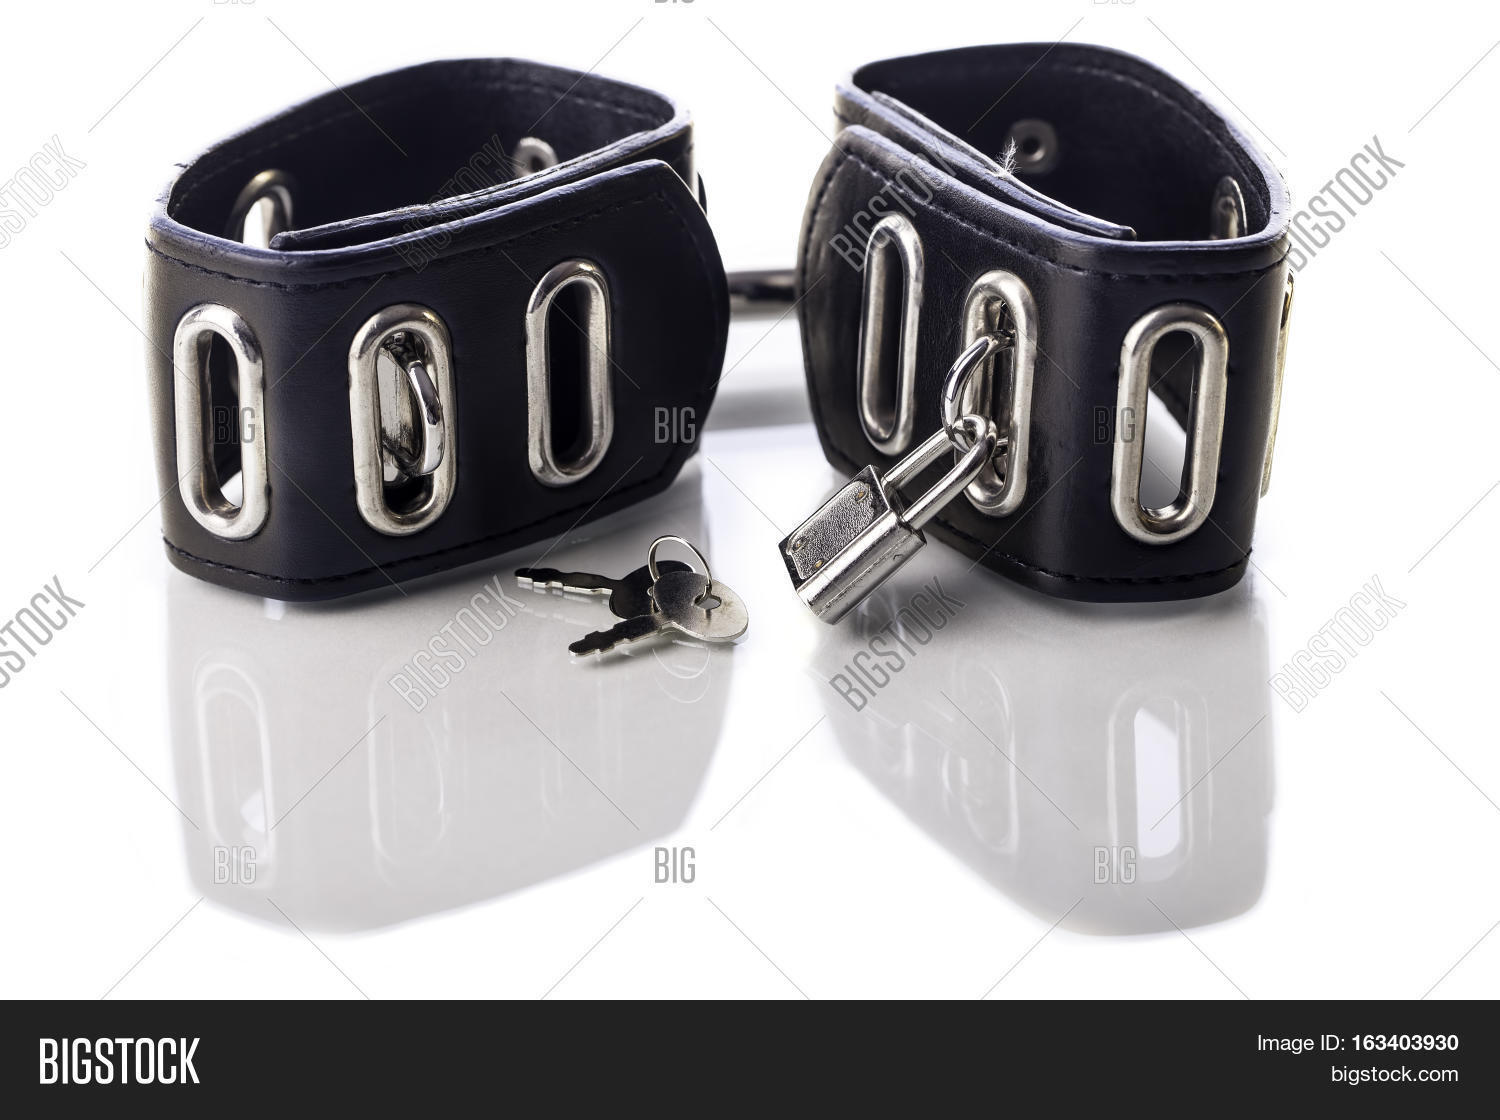 Leather bondage handcuffs for sex fetish and sexual role play. Image  isolated against white background